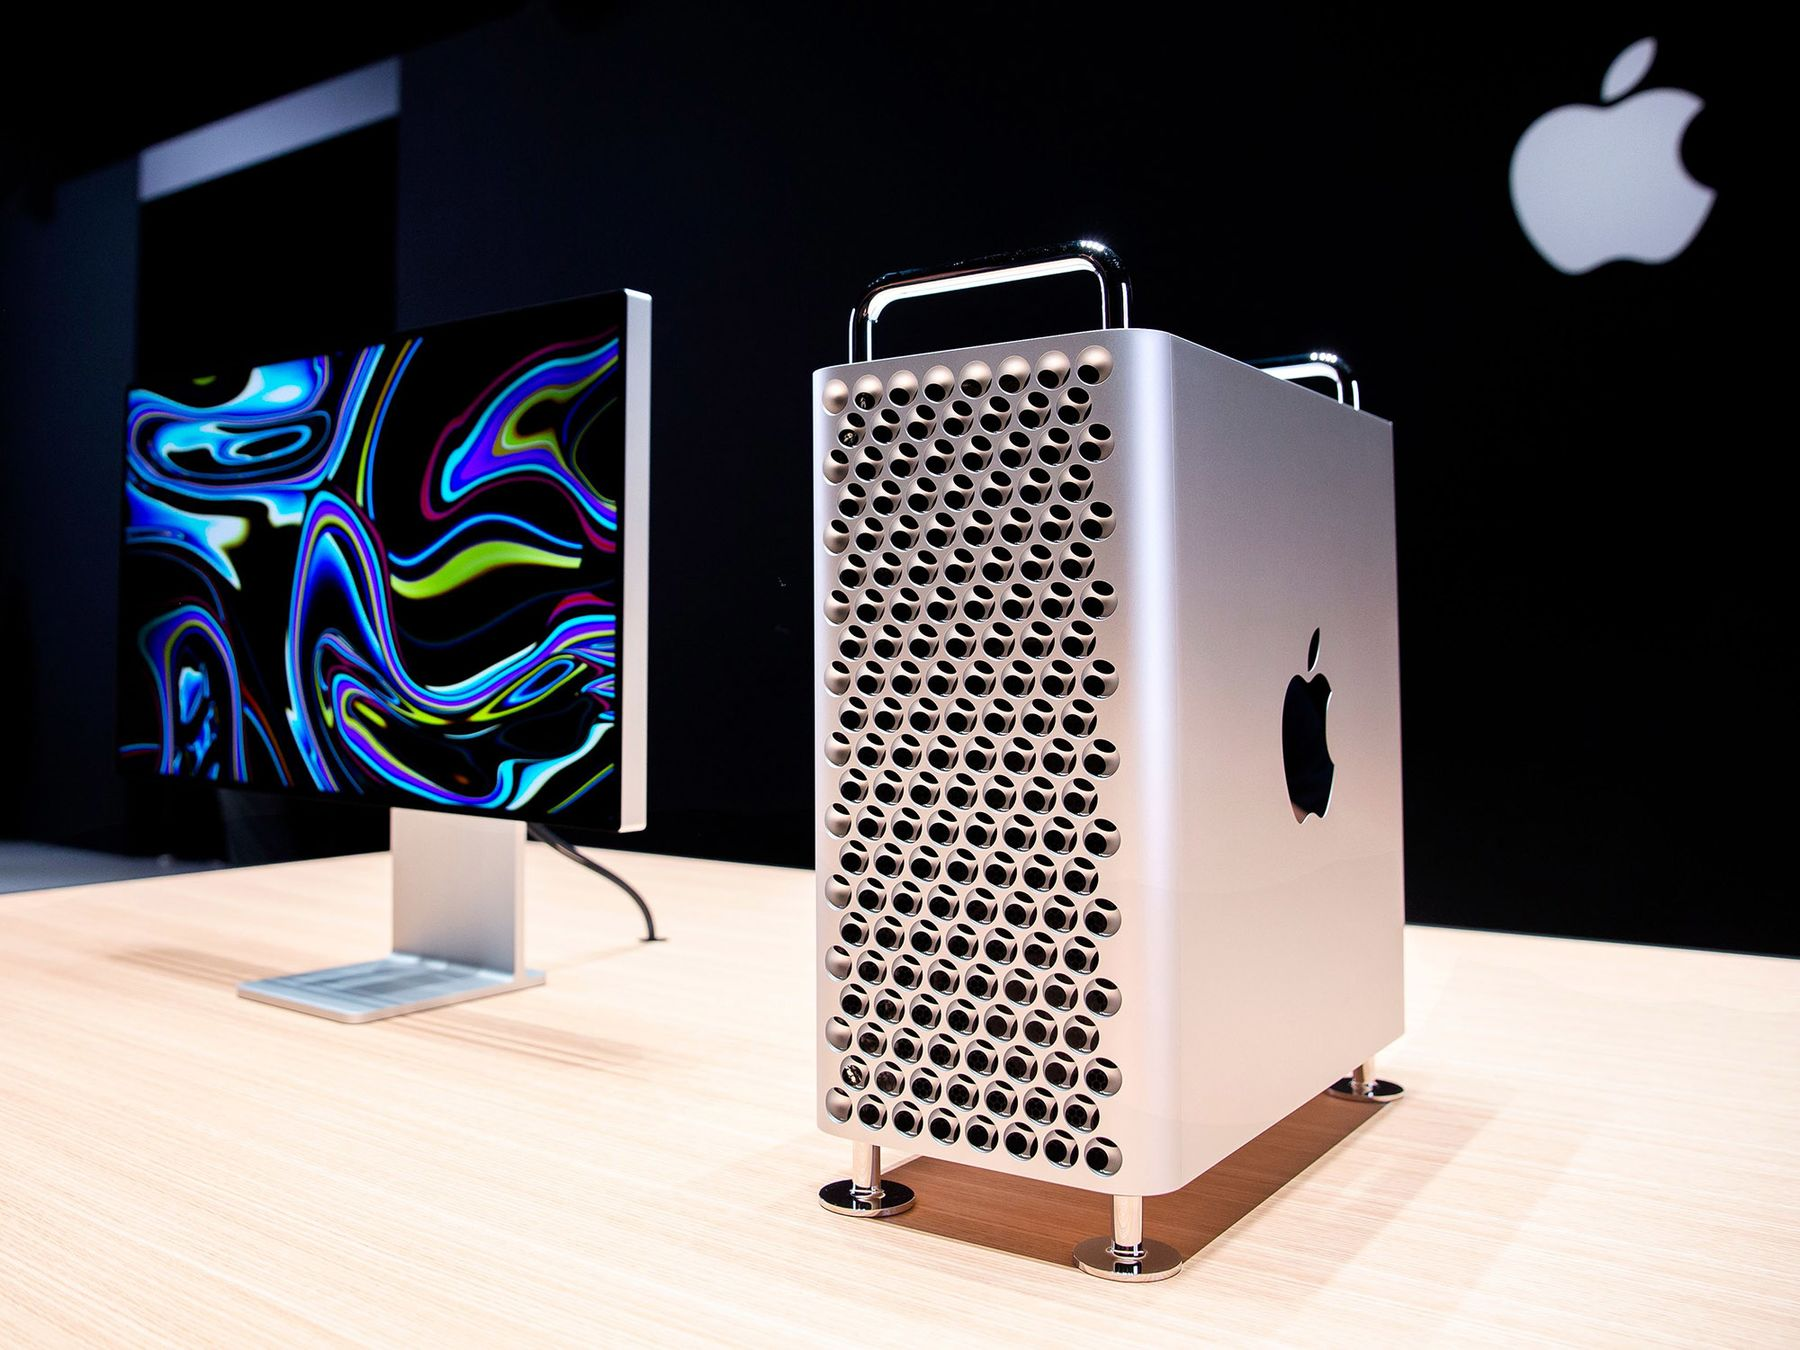 Apple's New Mac Pro to Be Assembled in Texas After Tariff Waiver